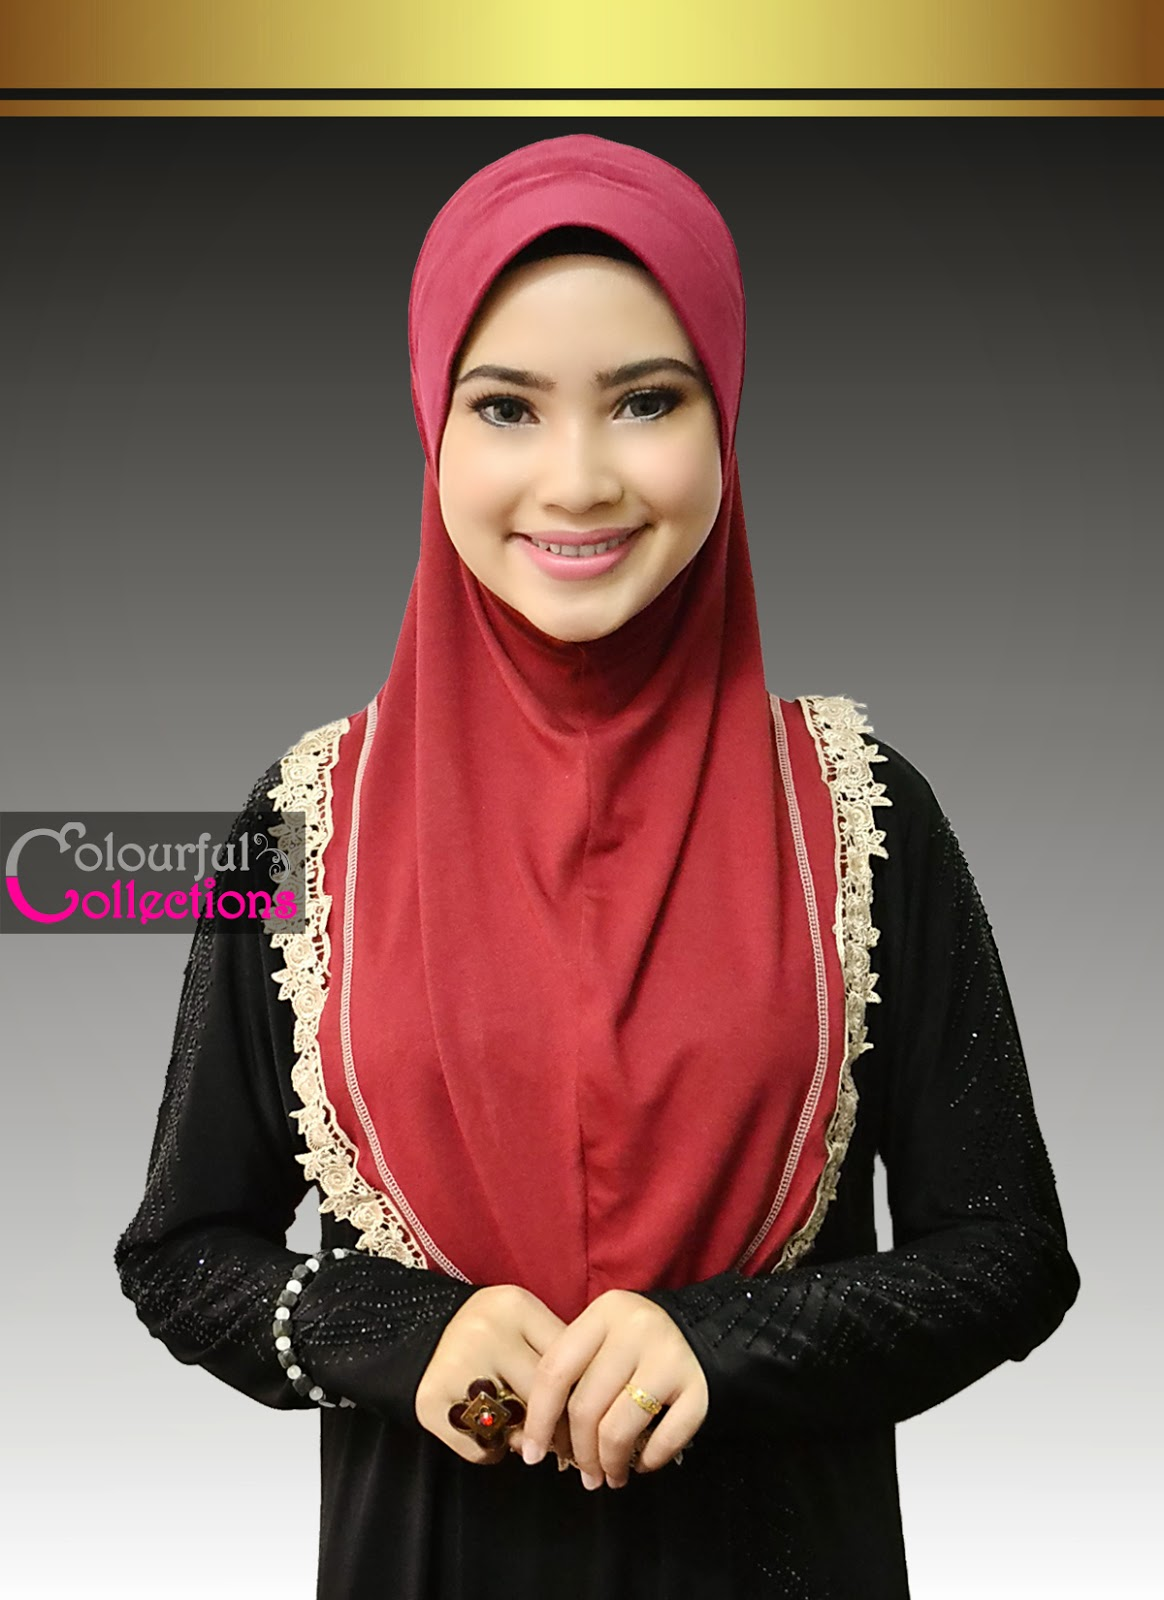 http://www.colourfulcollections.com/search/label/TUDUNG%20QASANDRA